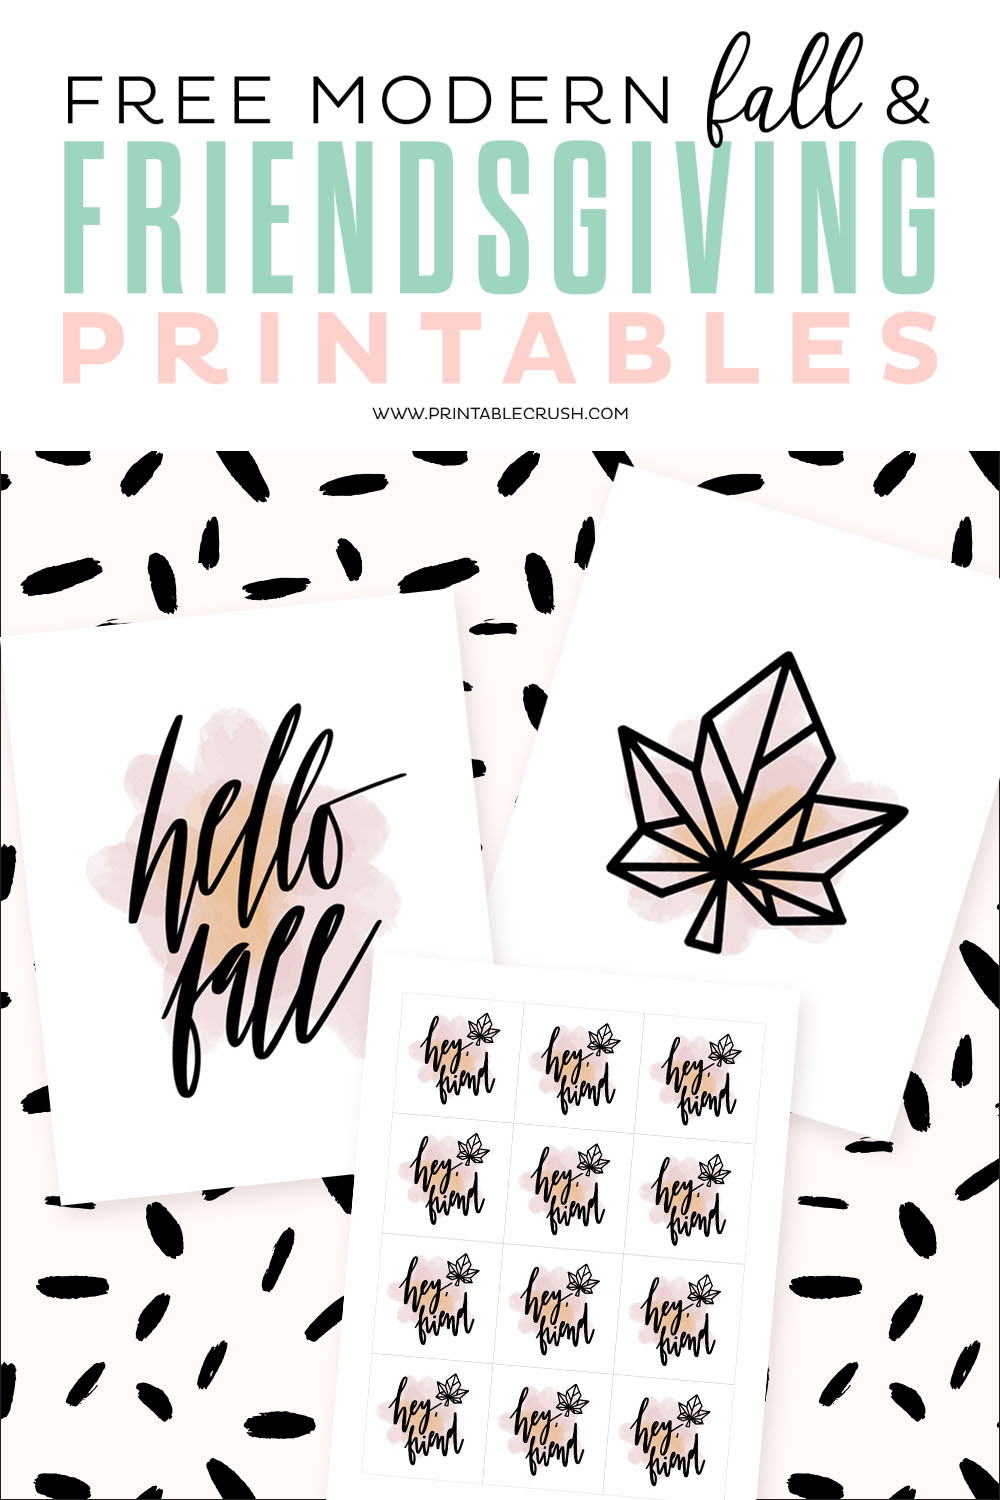 Free Modern Fall and Friendsgiving Printables - perfect for your Thanksgiving party this year! #friendsgiving #fallprintables #fallhomedecor #freeprintables #thanksgivingprintable #modernfalldecor